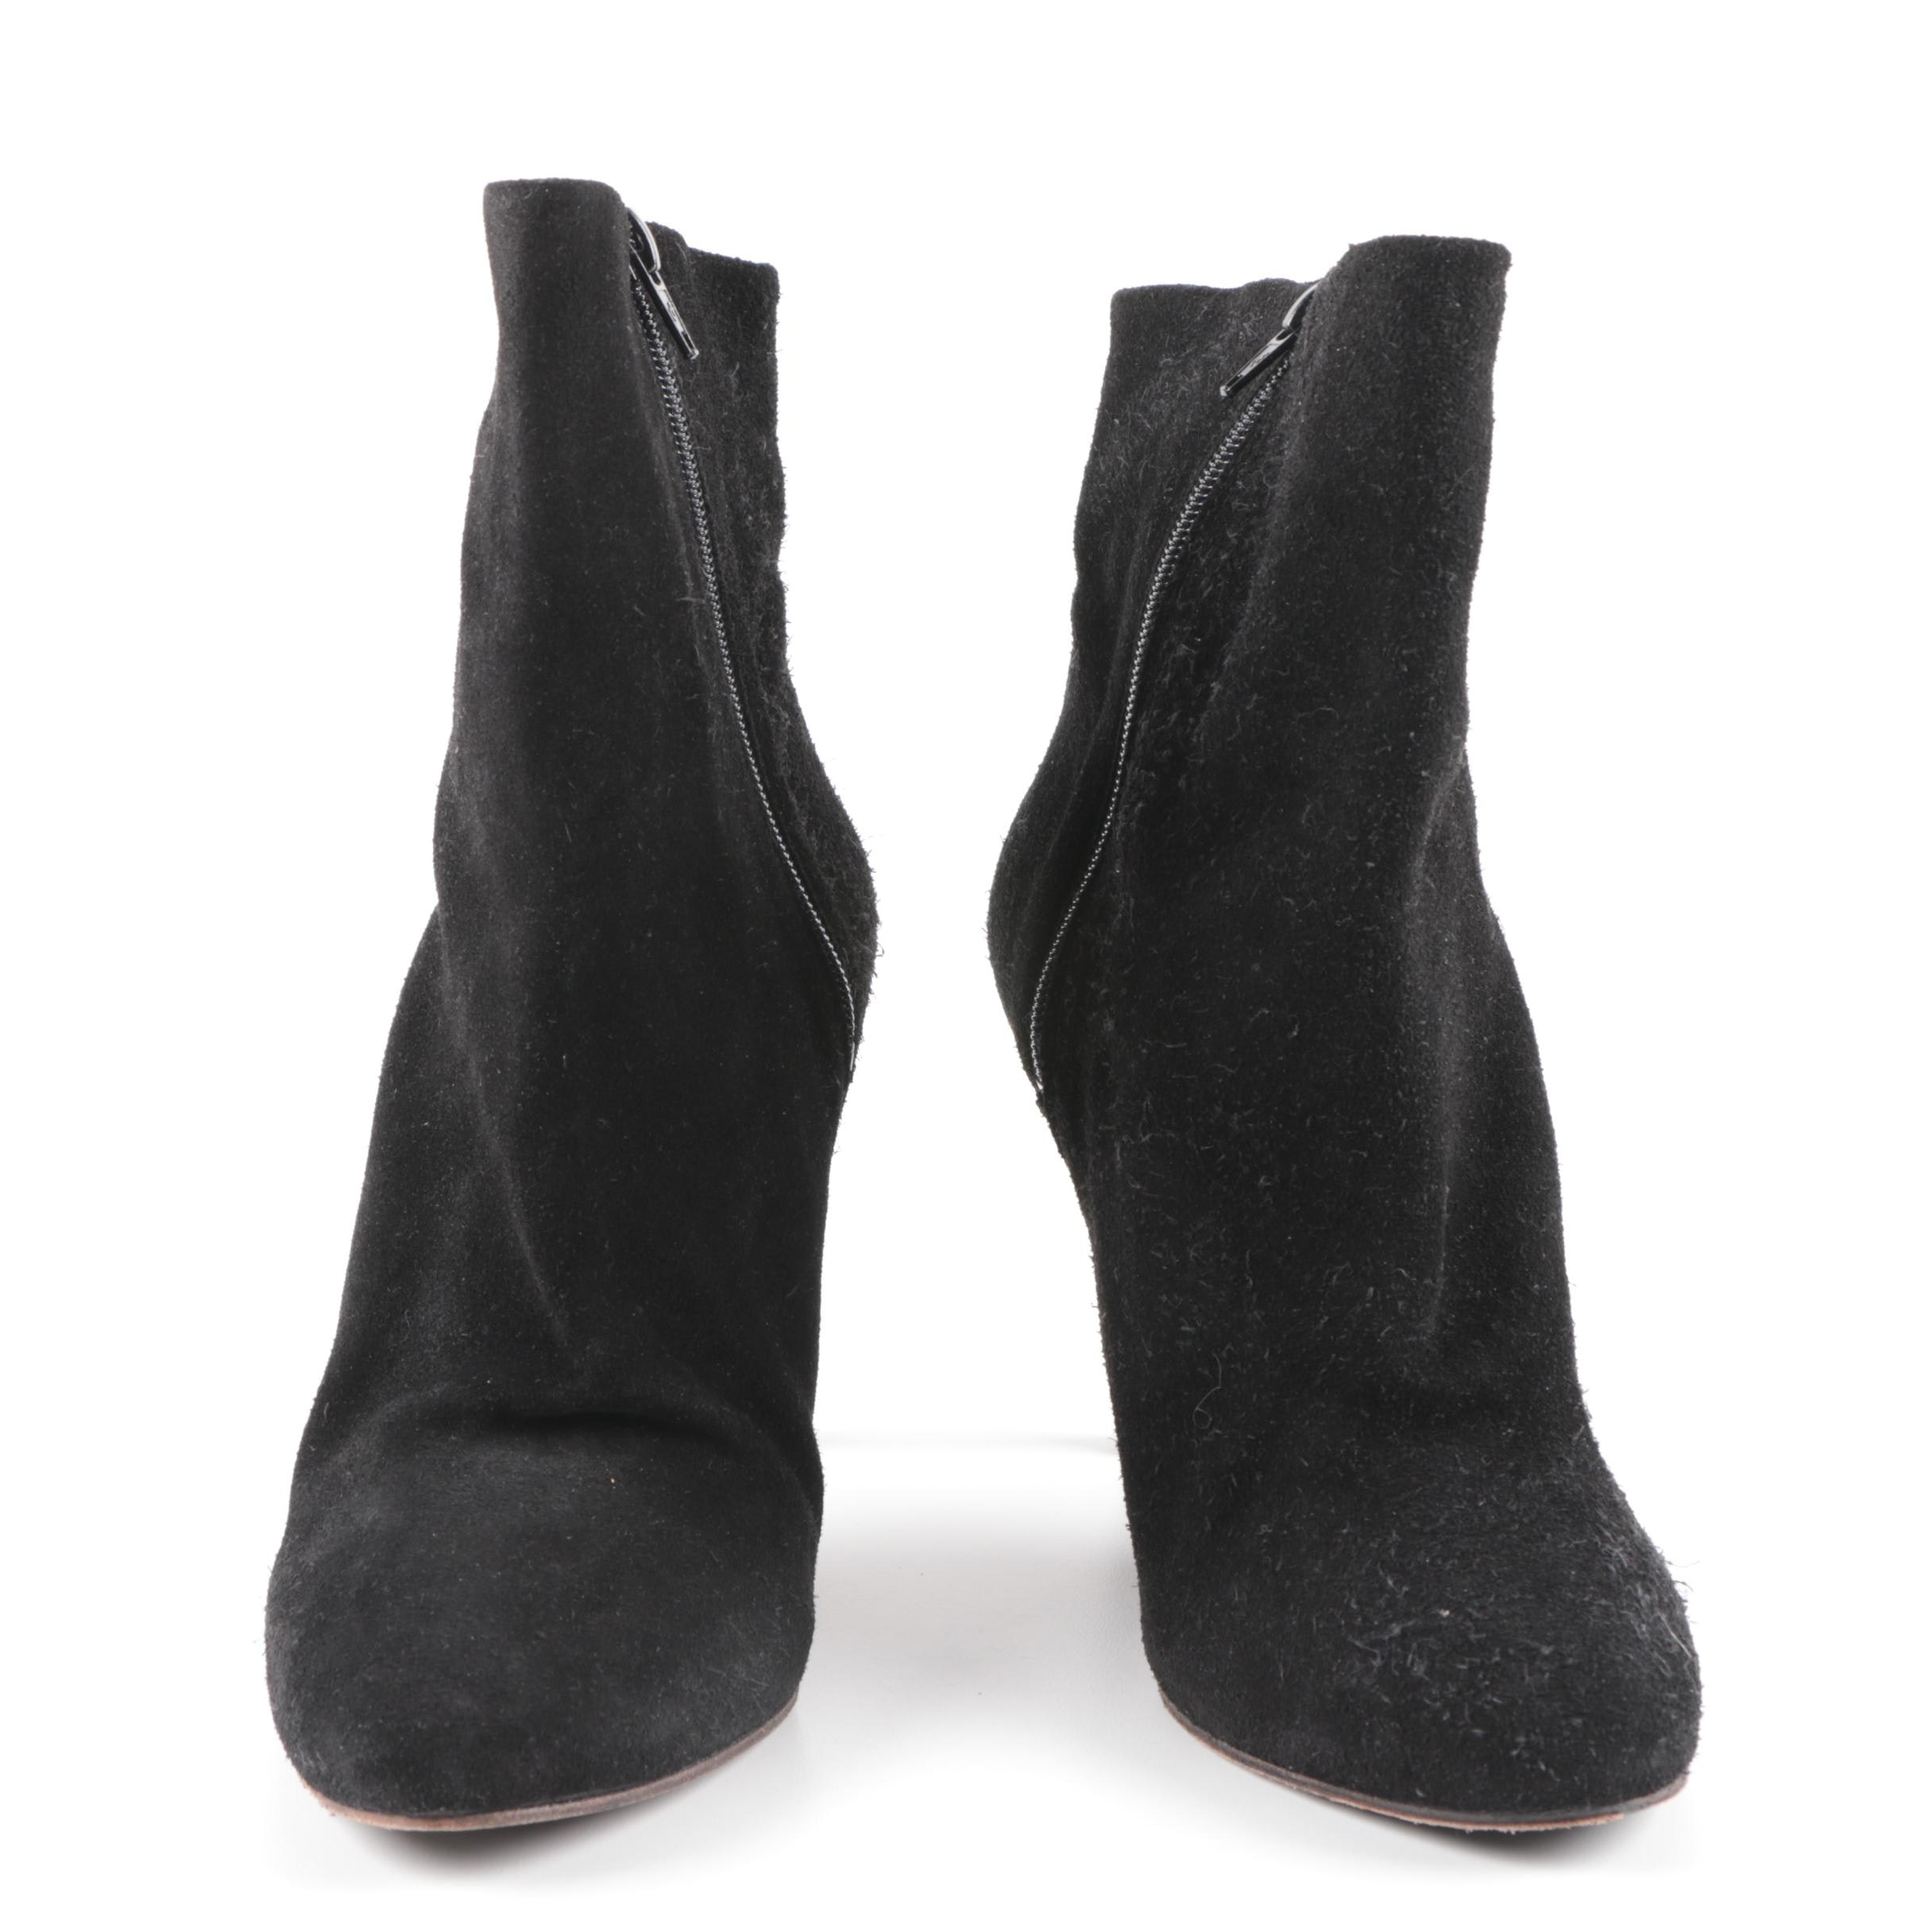 Free People Black Suede Ankle Boots